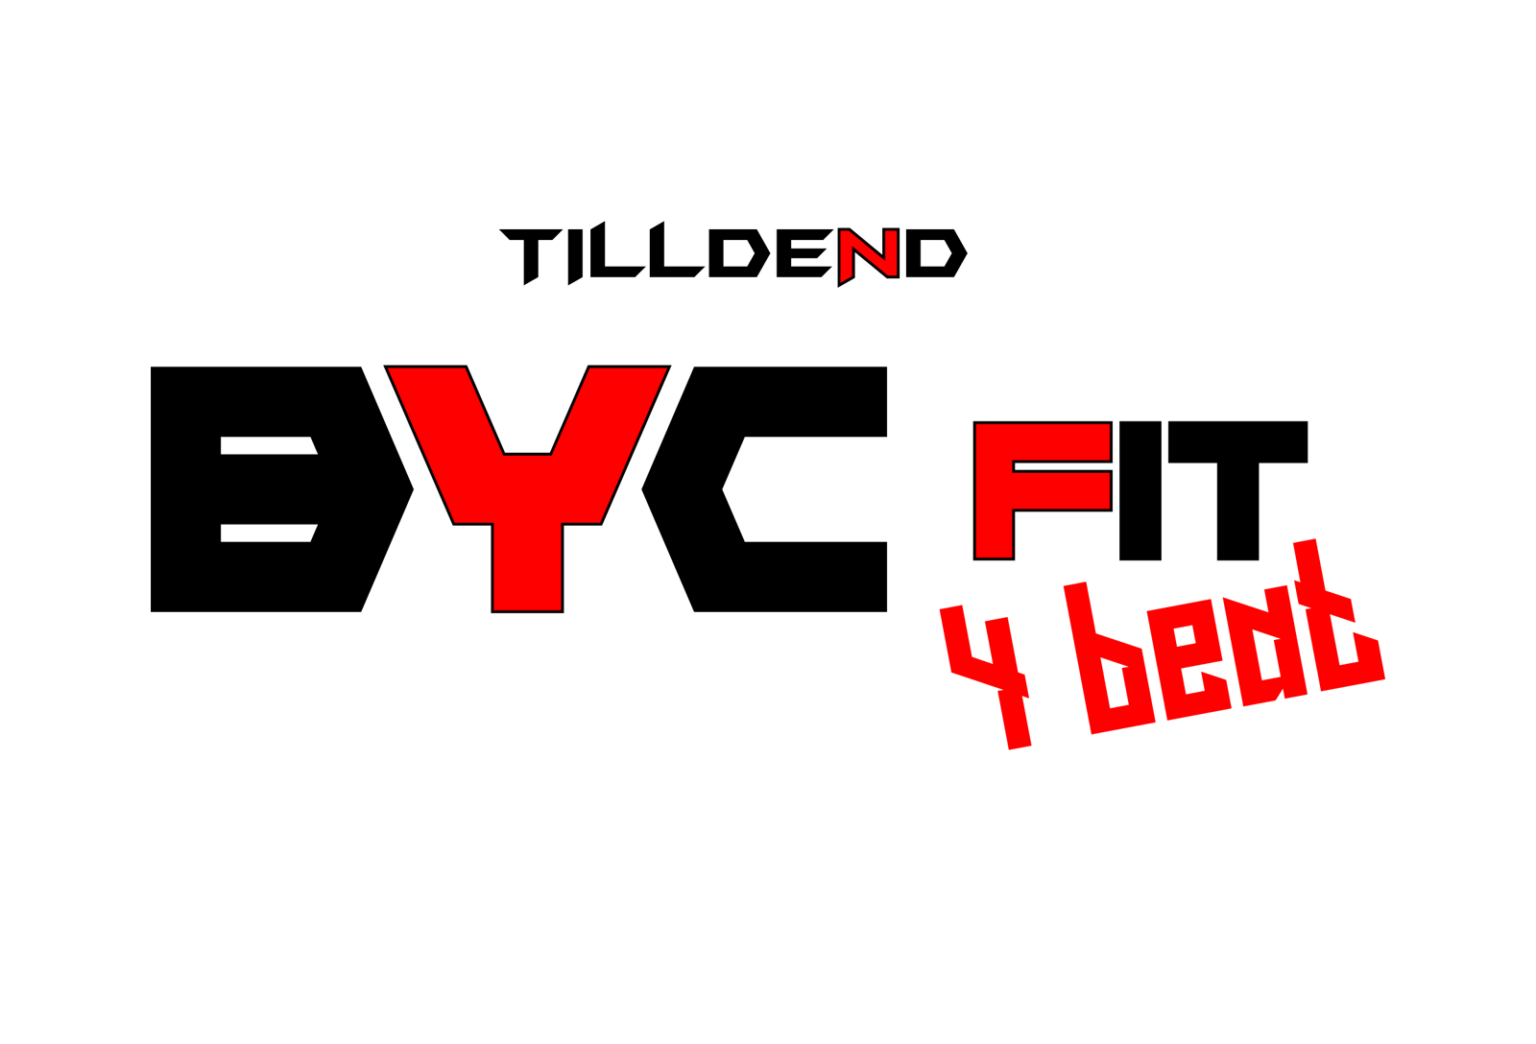 Tilldend BYC FIT 4BEAT